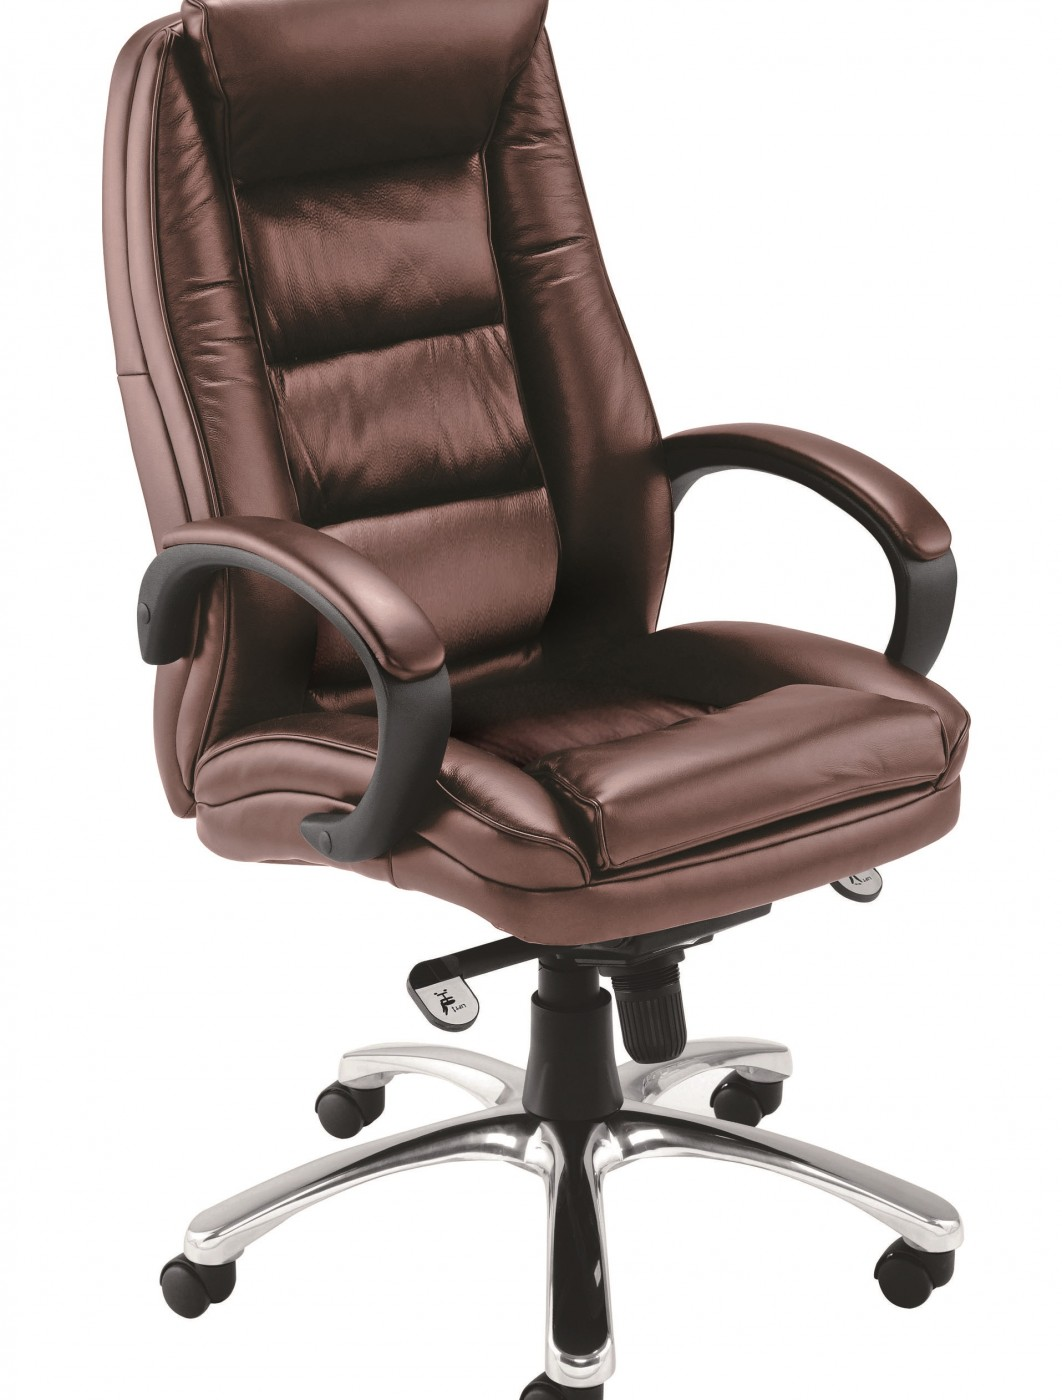 leather executive chair graco blossom 4 in 1 high montana office ch0240 121